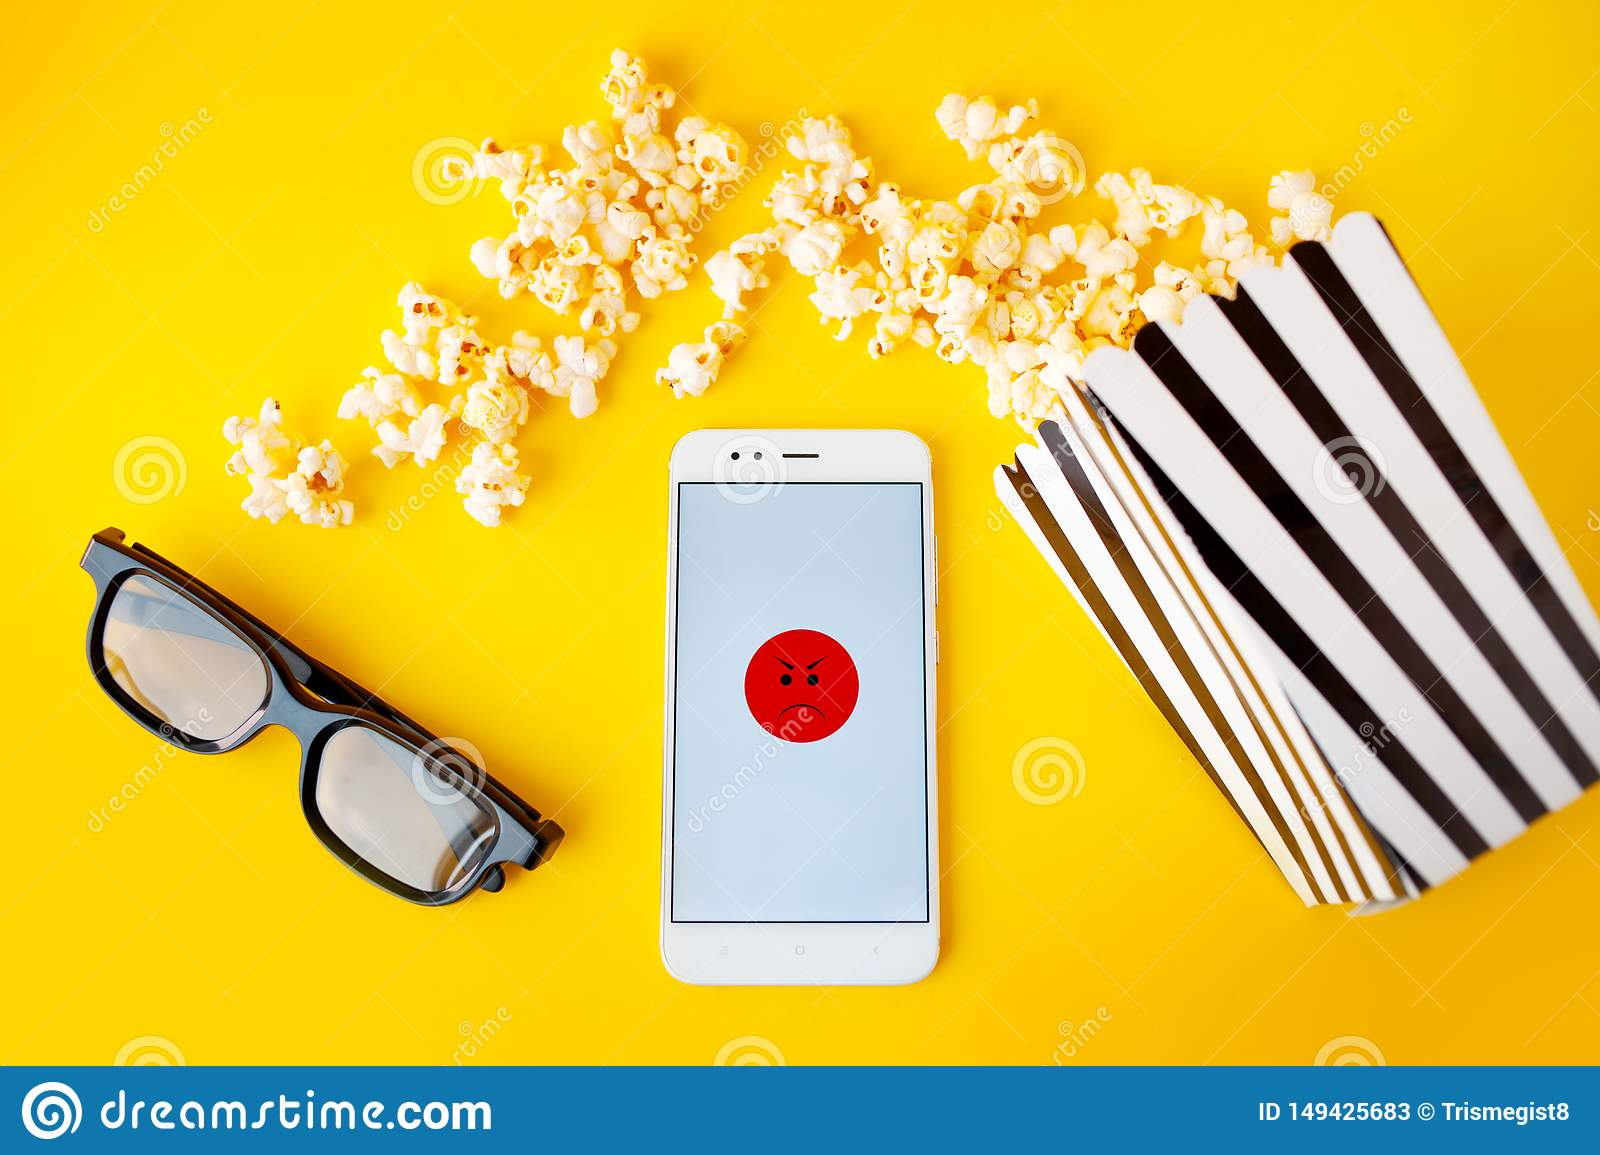 A white smartphone with smilies on the screen, 3d glasses, a black and white striped paper box and scattered popcorn